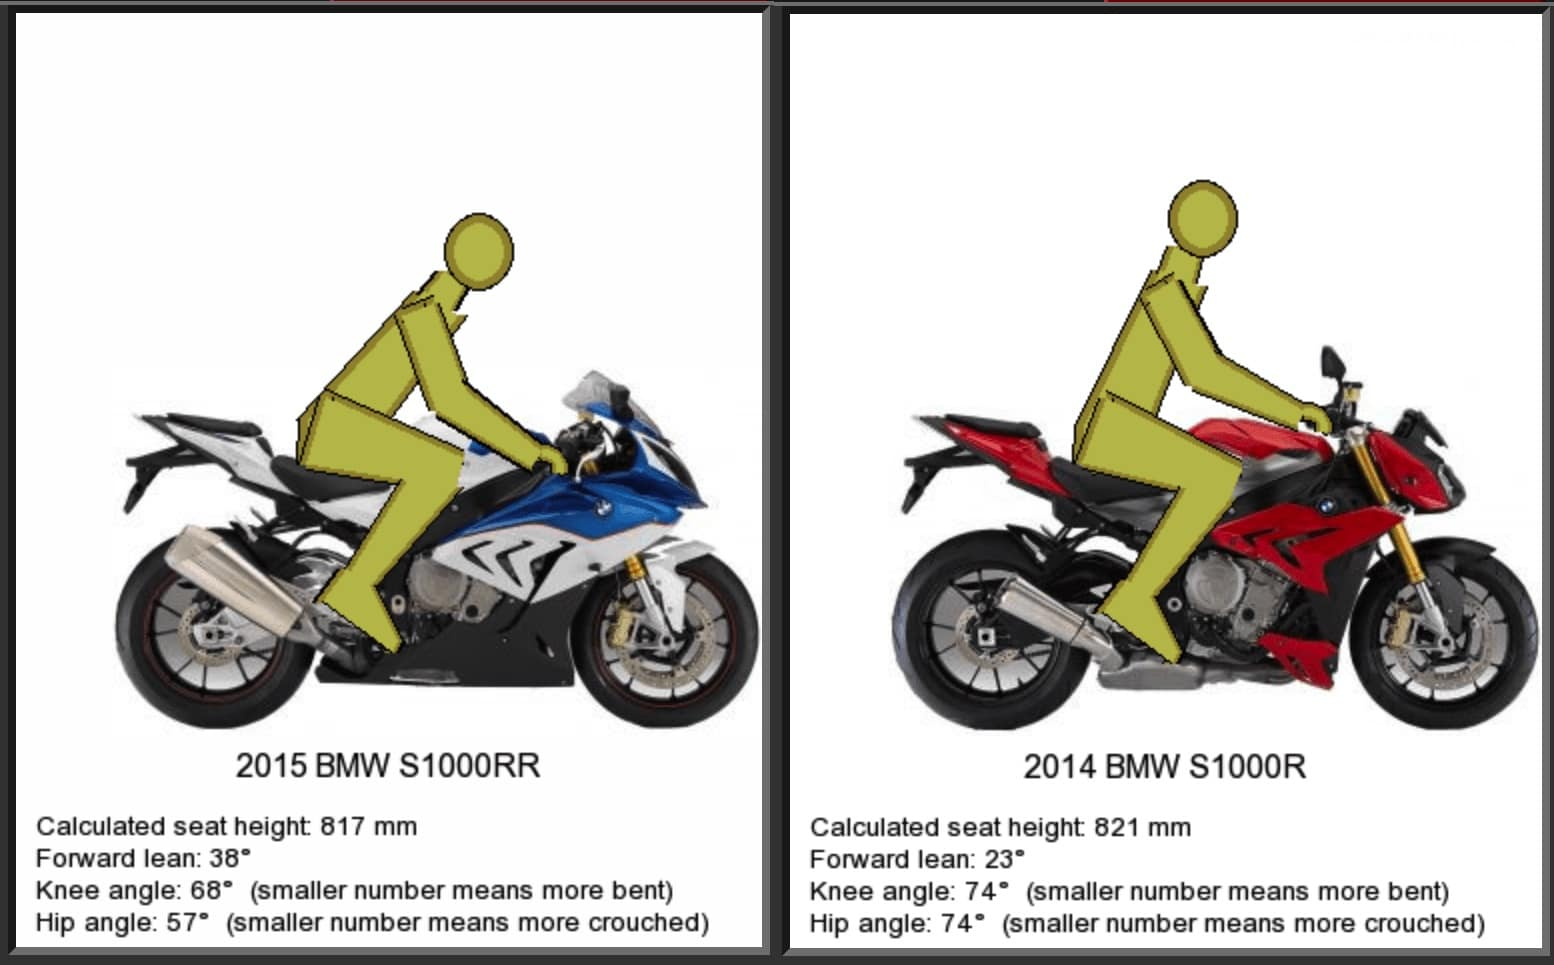 Ergonomics and riding position of S1000RR compared with S1000R